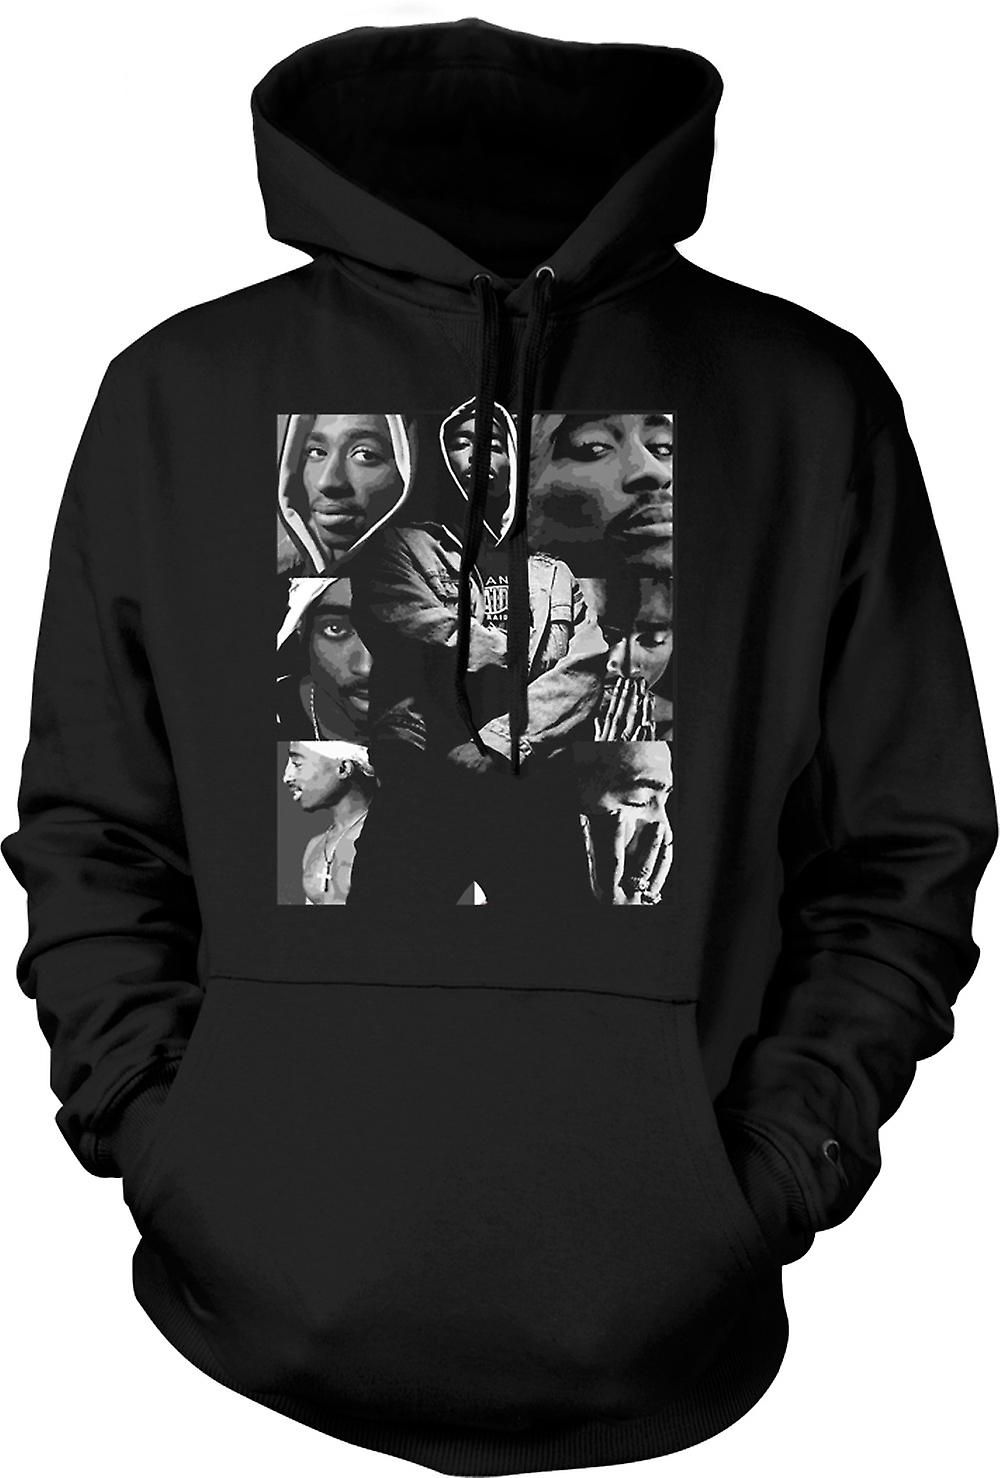 Mens-Hoodie - Tupac Collage - Hip Hop